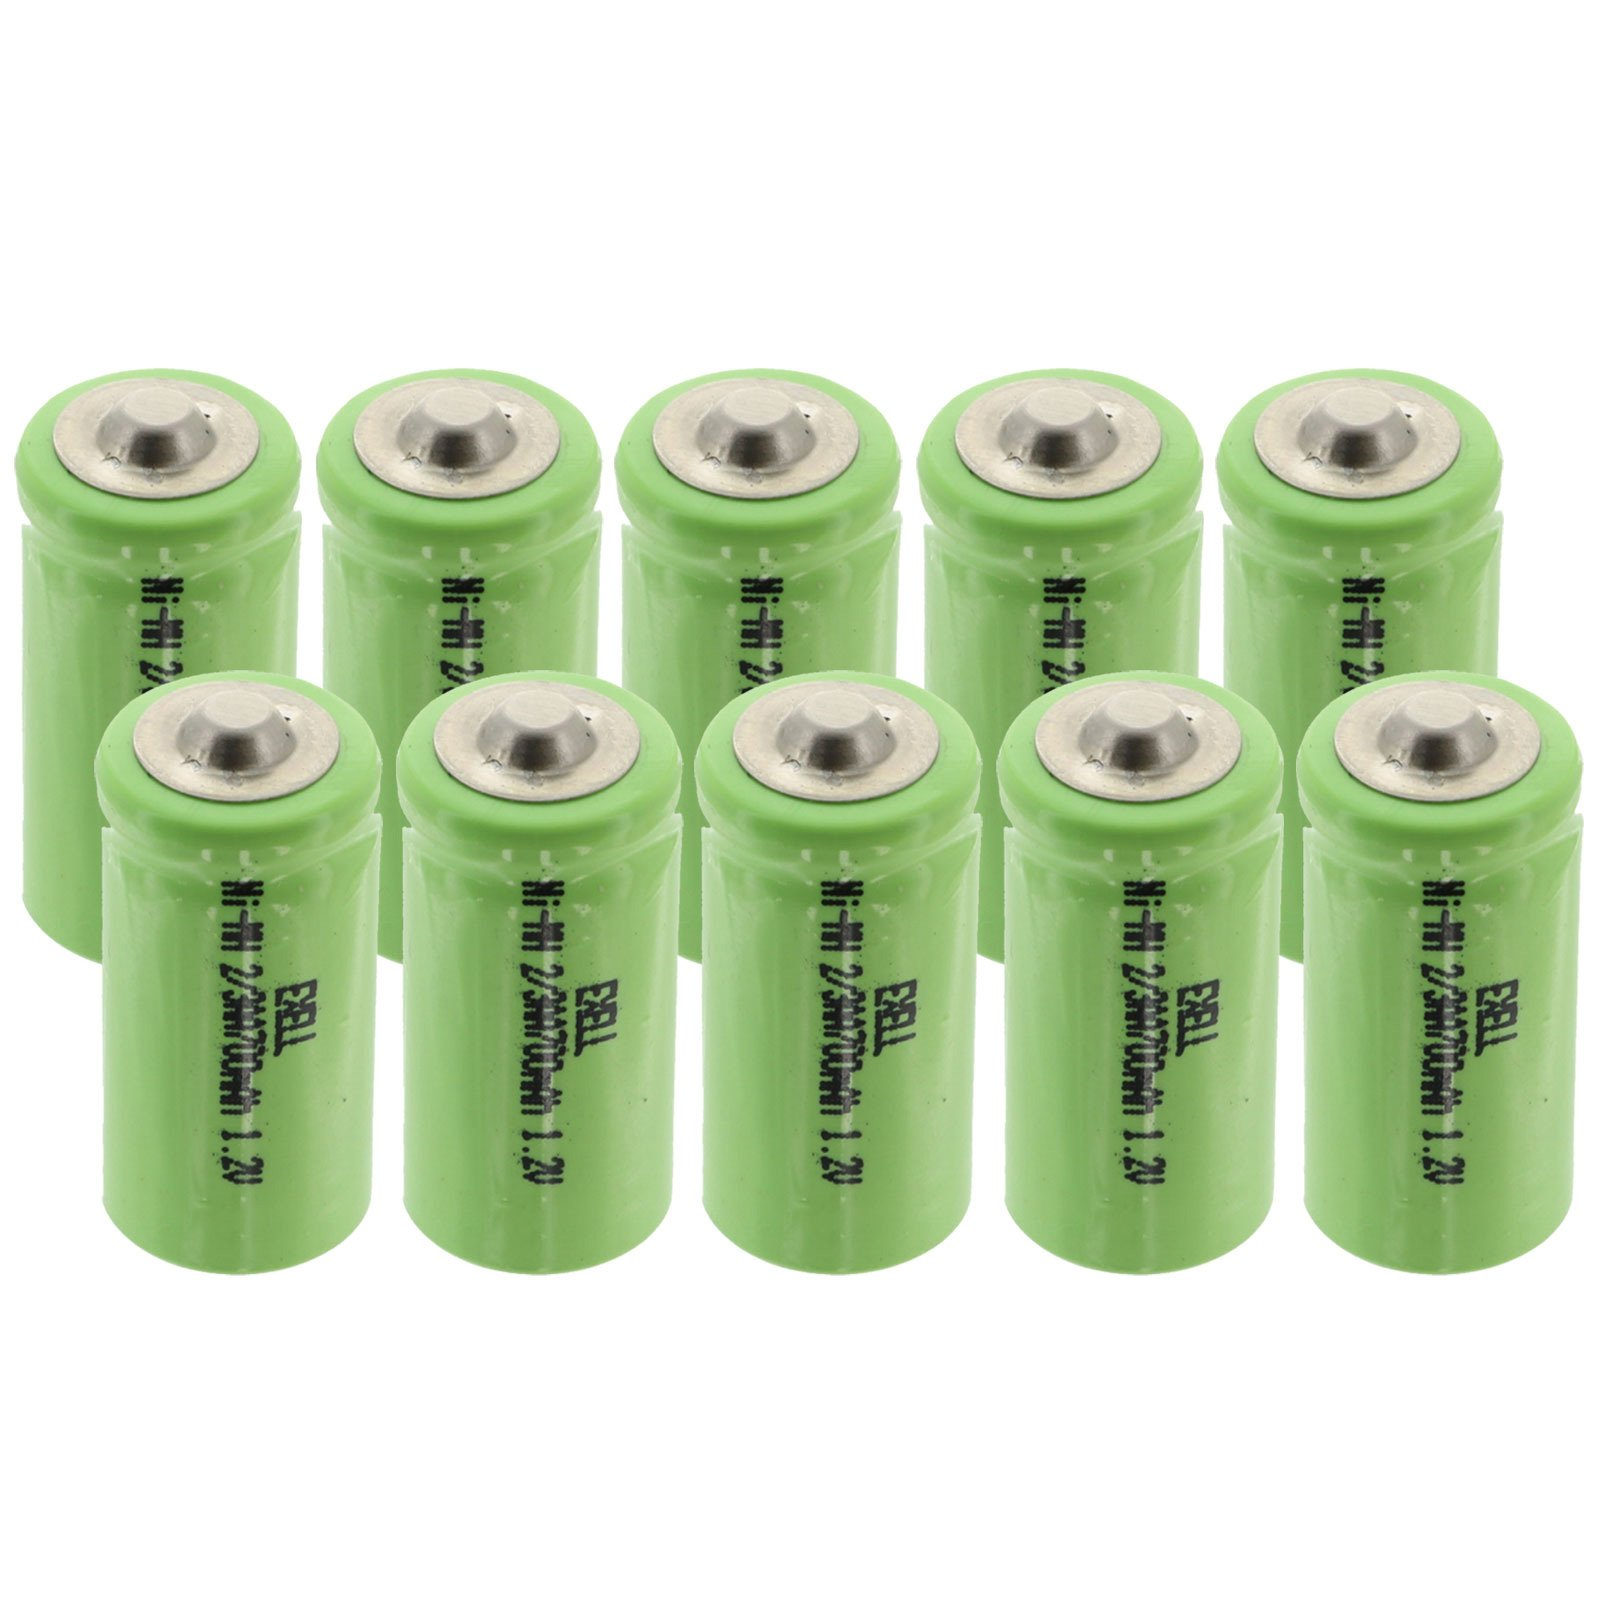 10x Exell 1.2V 2/3AA Size 700mAh NiMH Rechargeable Button Top Batteries use with high power static applications (Telecoms UPS and Smart grid) radio controlled devices electric tools electric mopeds